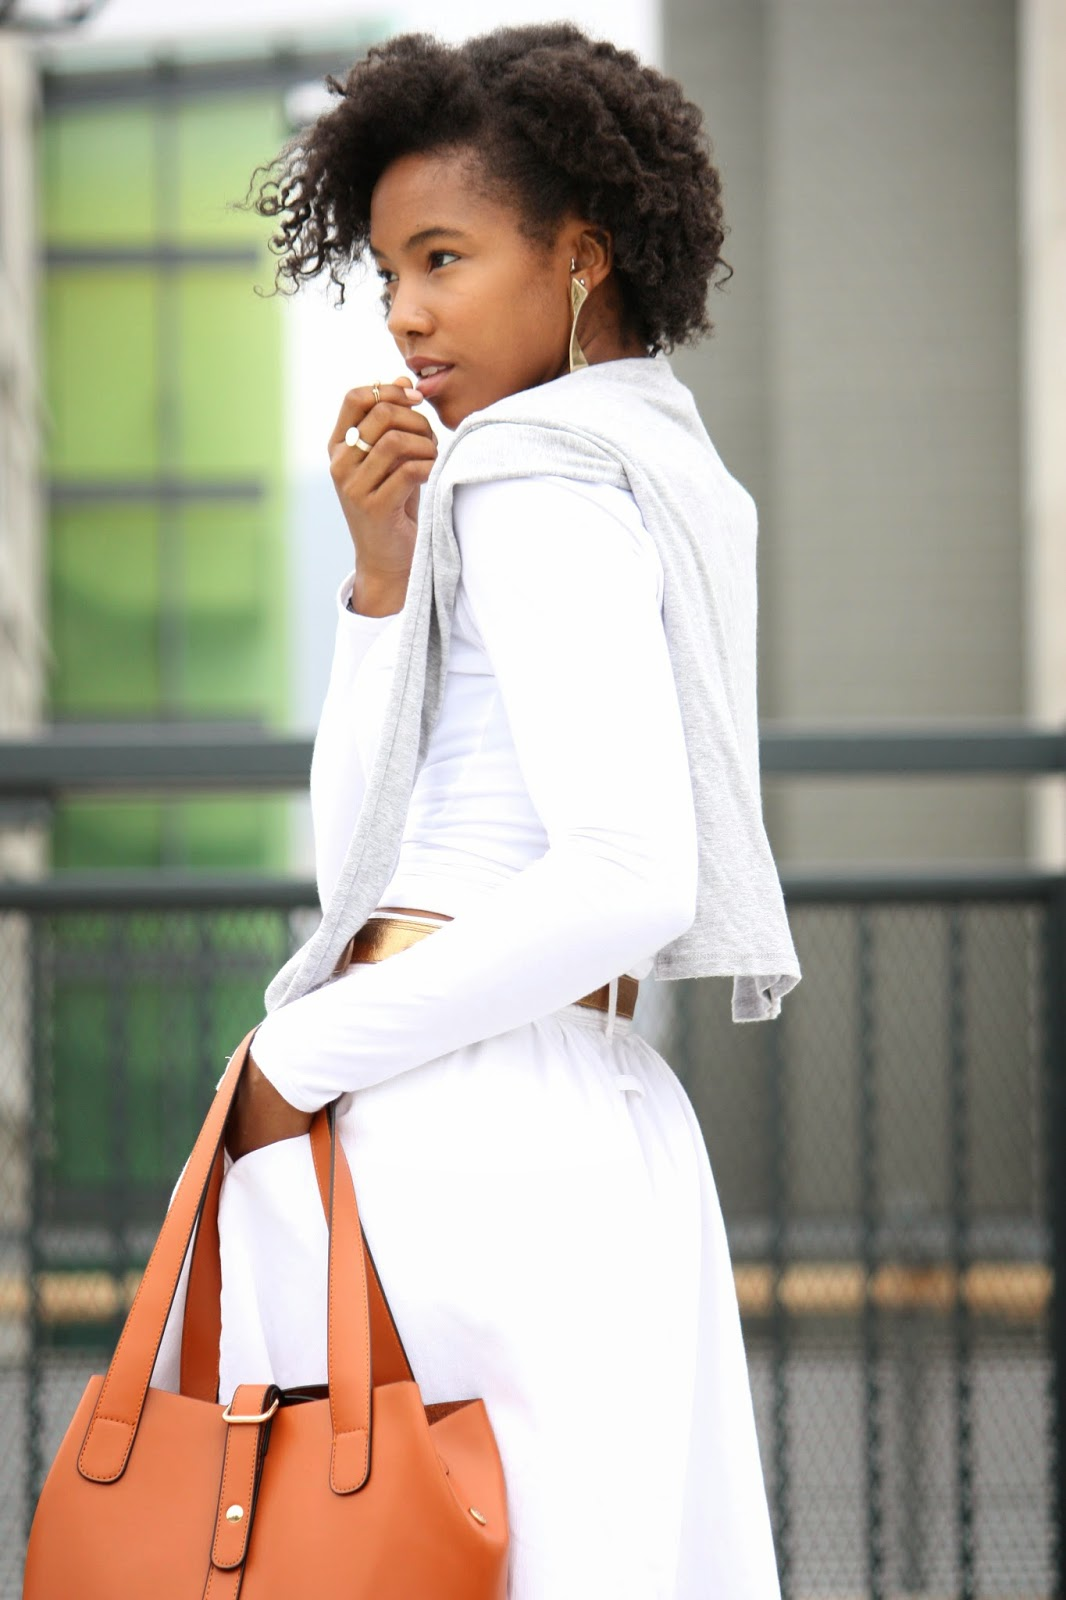 Marquise C Brown fashion personal style blogger